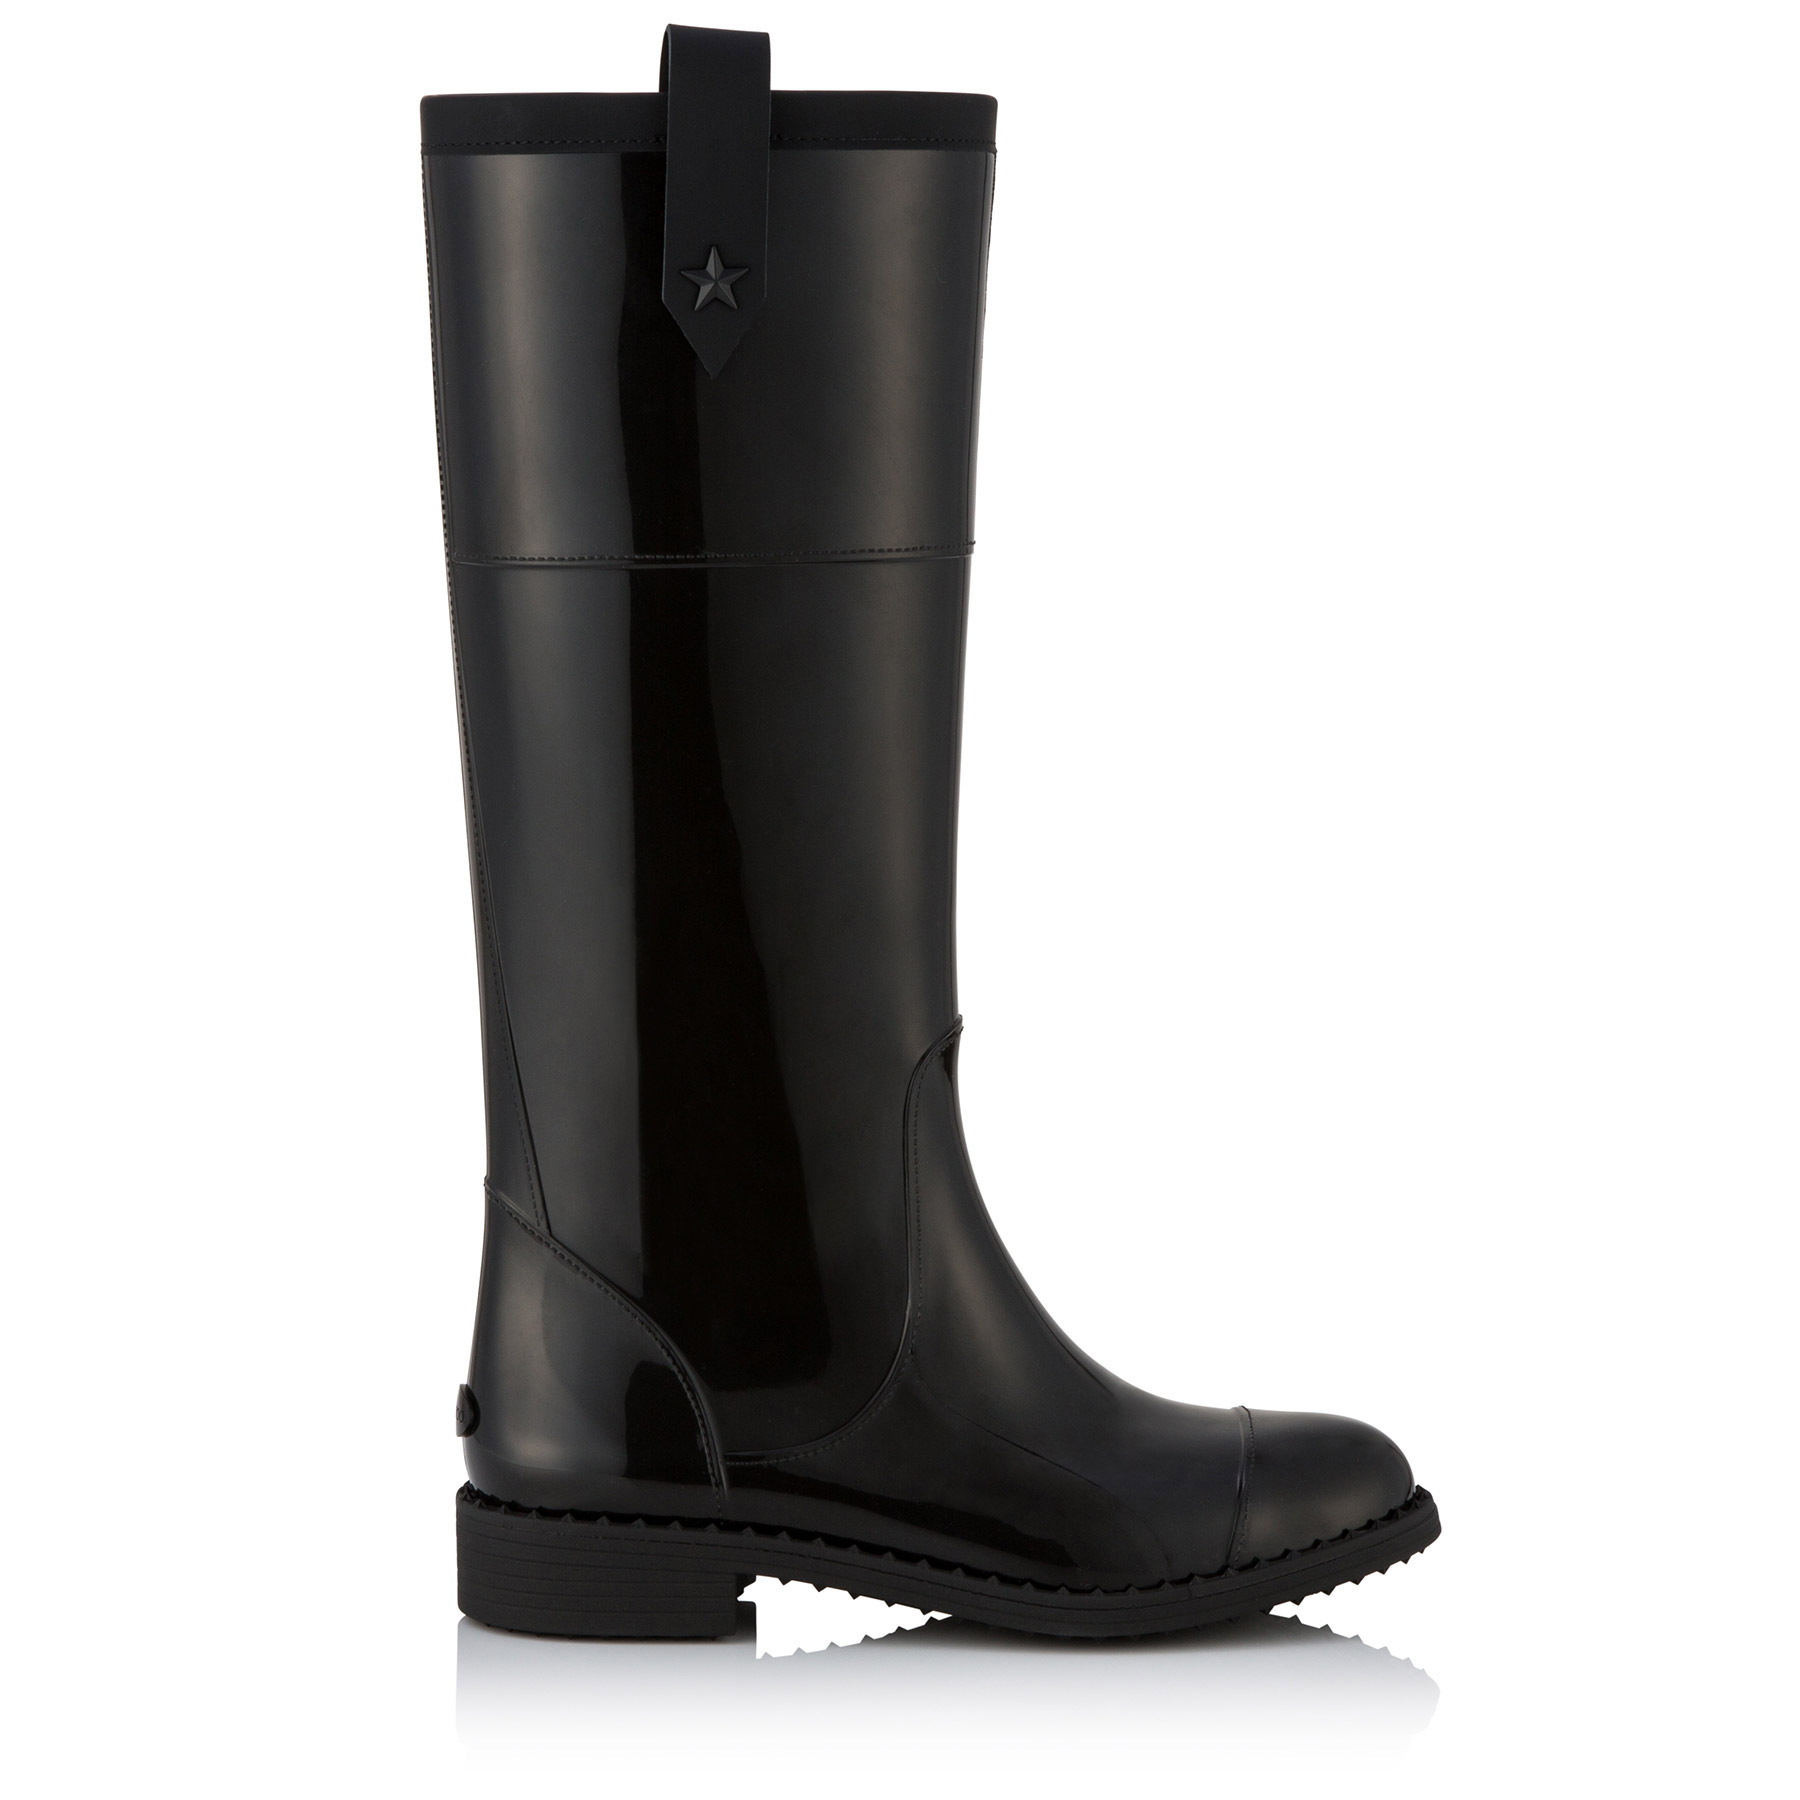 EDITH FLAT Black TPU Rain Boot by Jimmy Choo